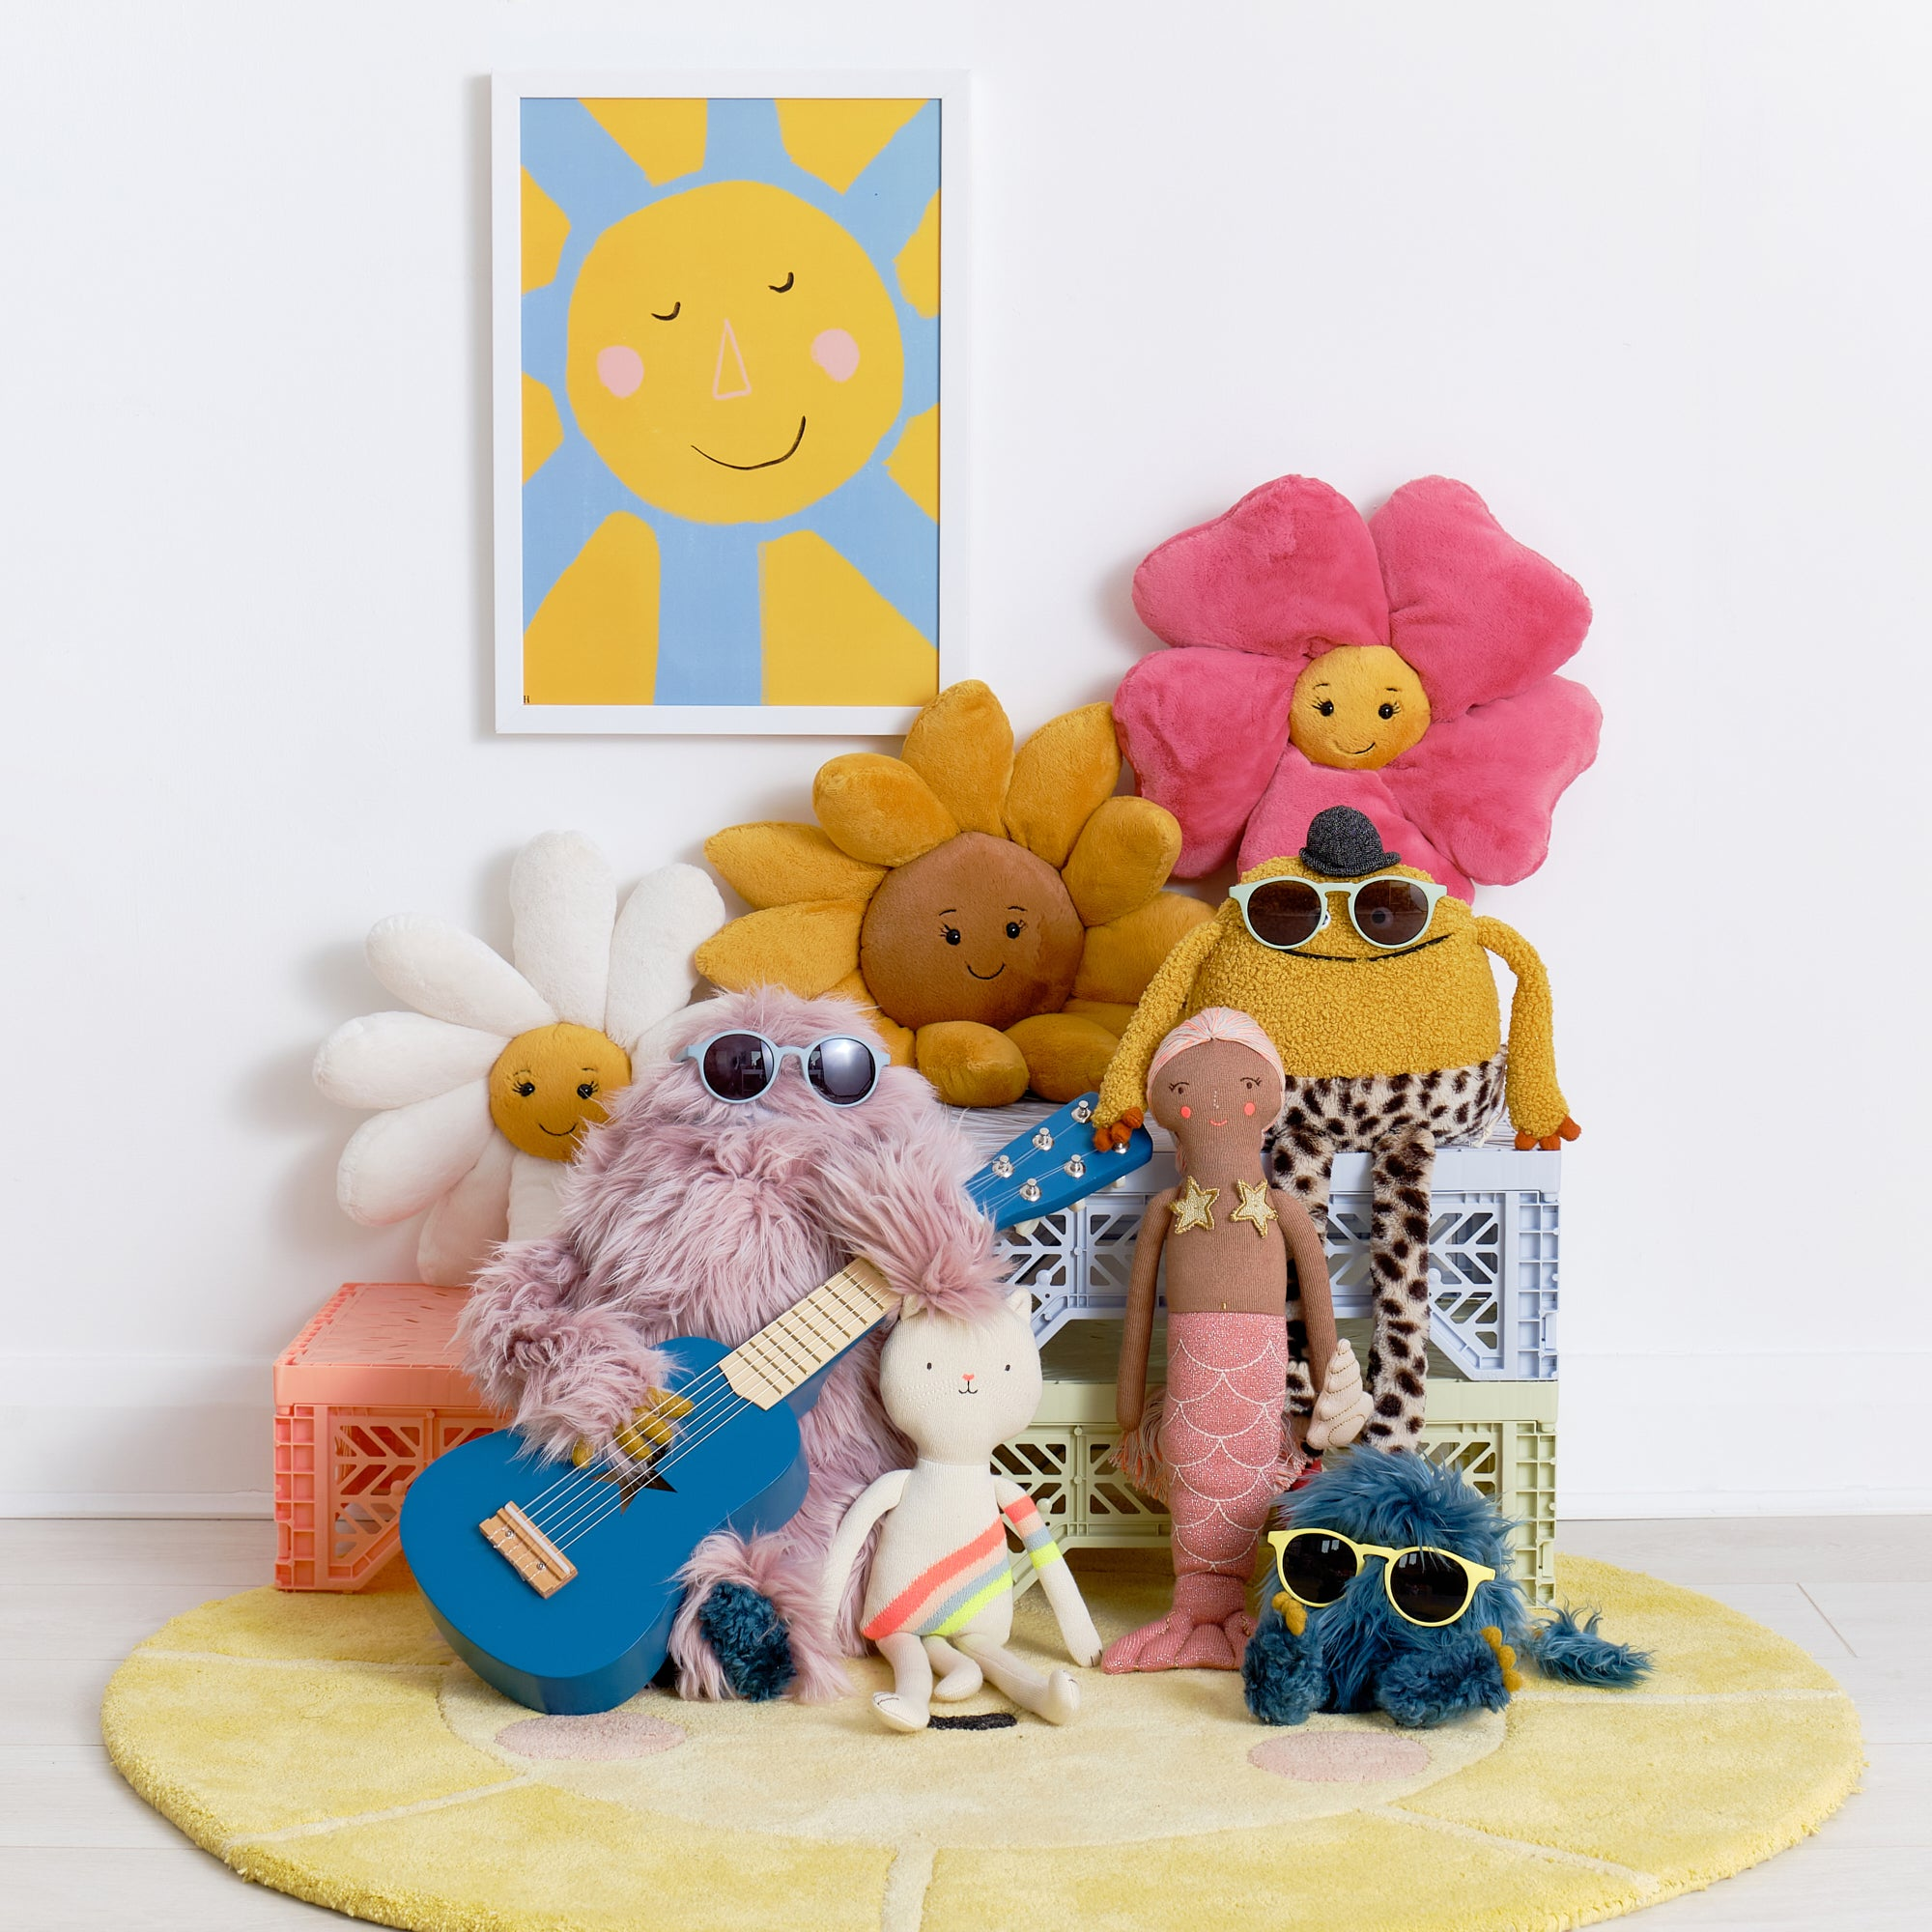 Toys and accessories, available at Bobby Rabbit.